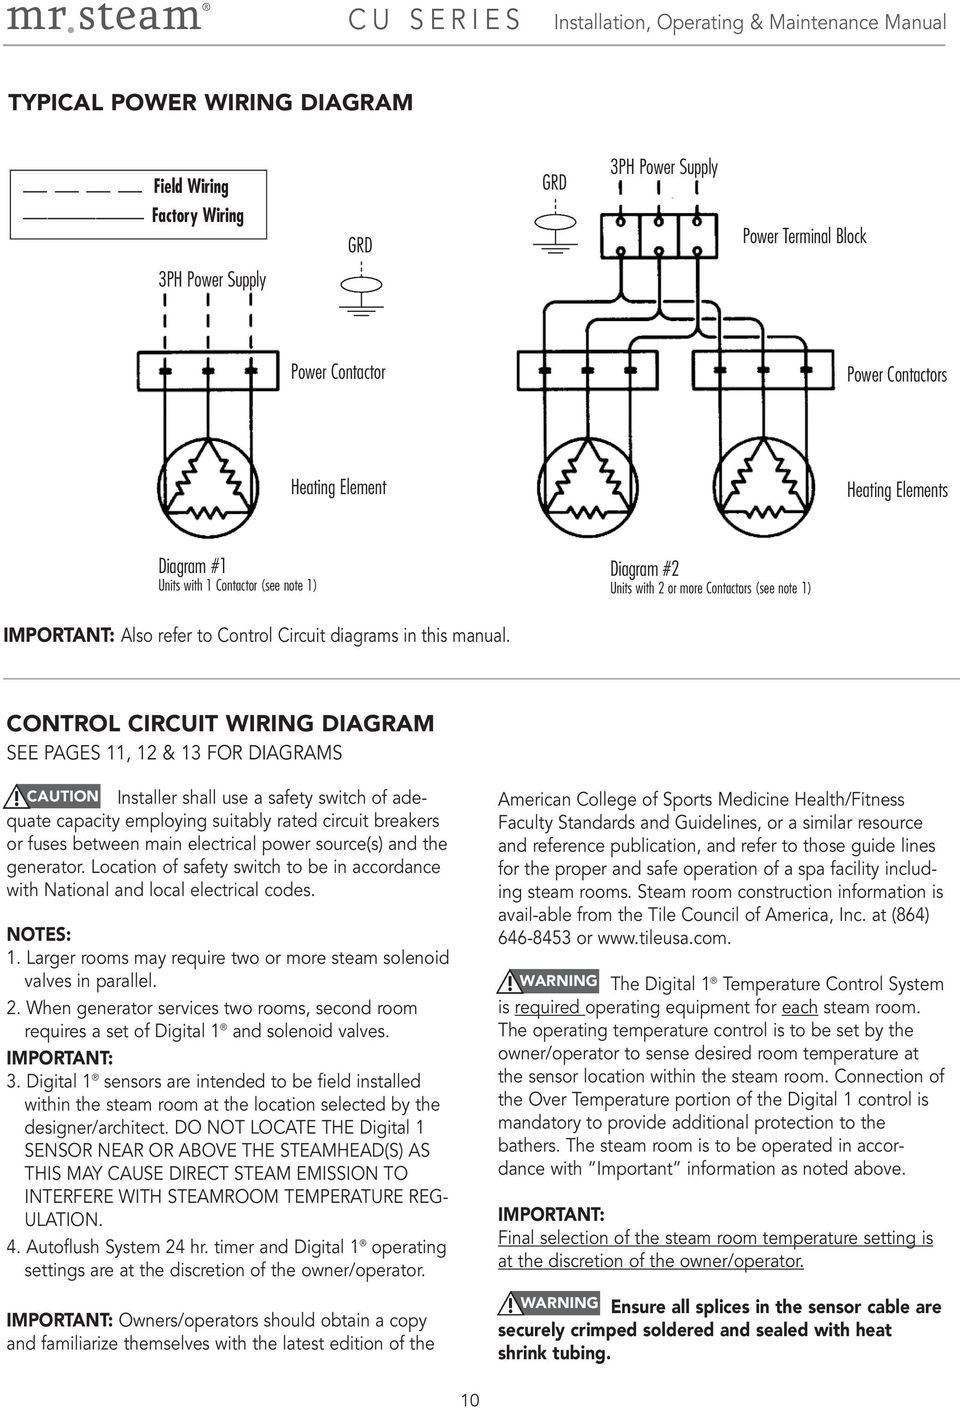 Mr Steam Wiring Diagram Auto Electrical 01v96 Block Installation Operation U0026 Maintenance Manual